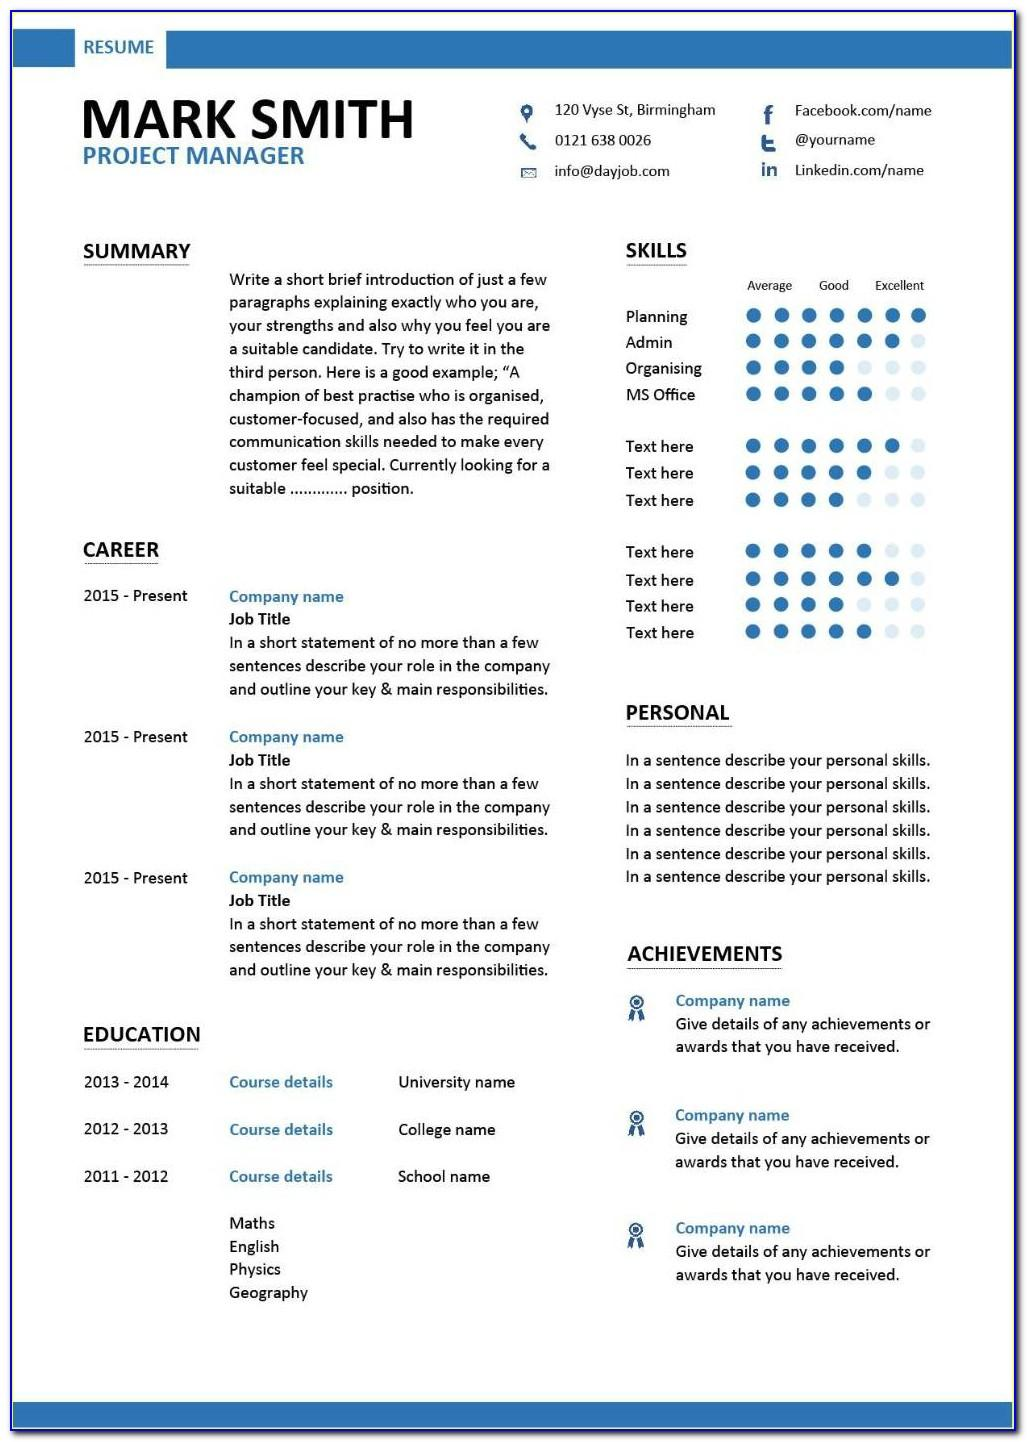 Project Manager Resume Template Free